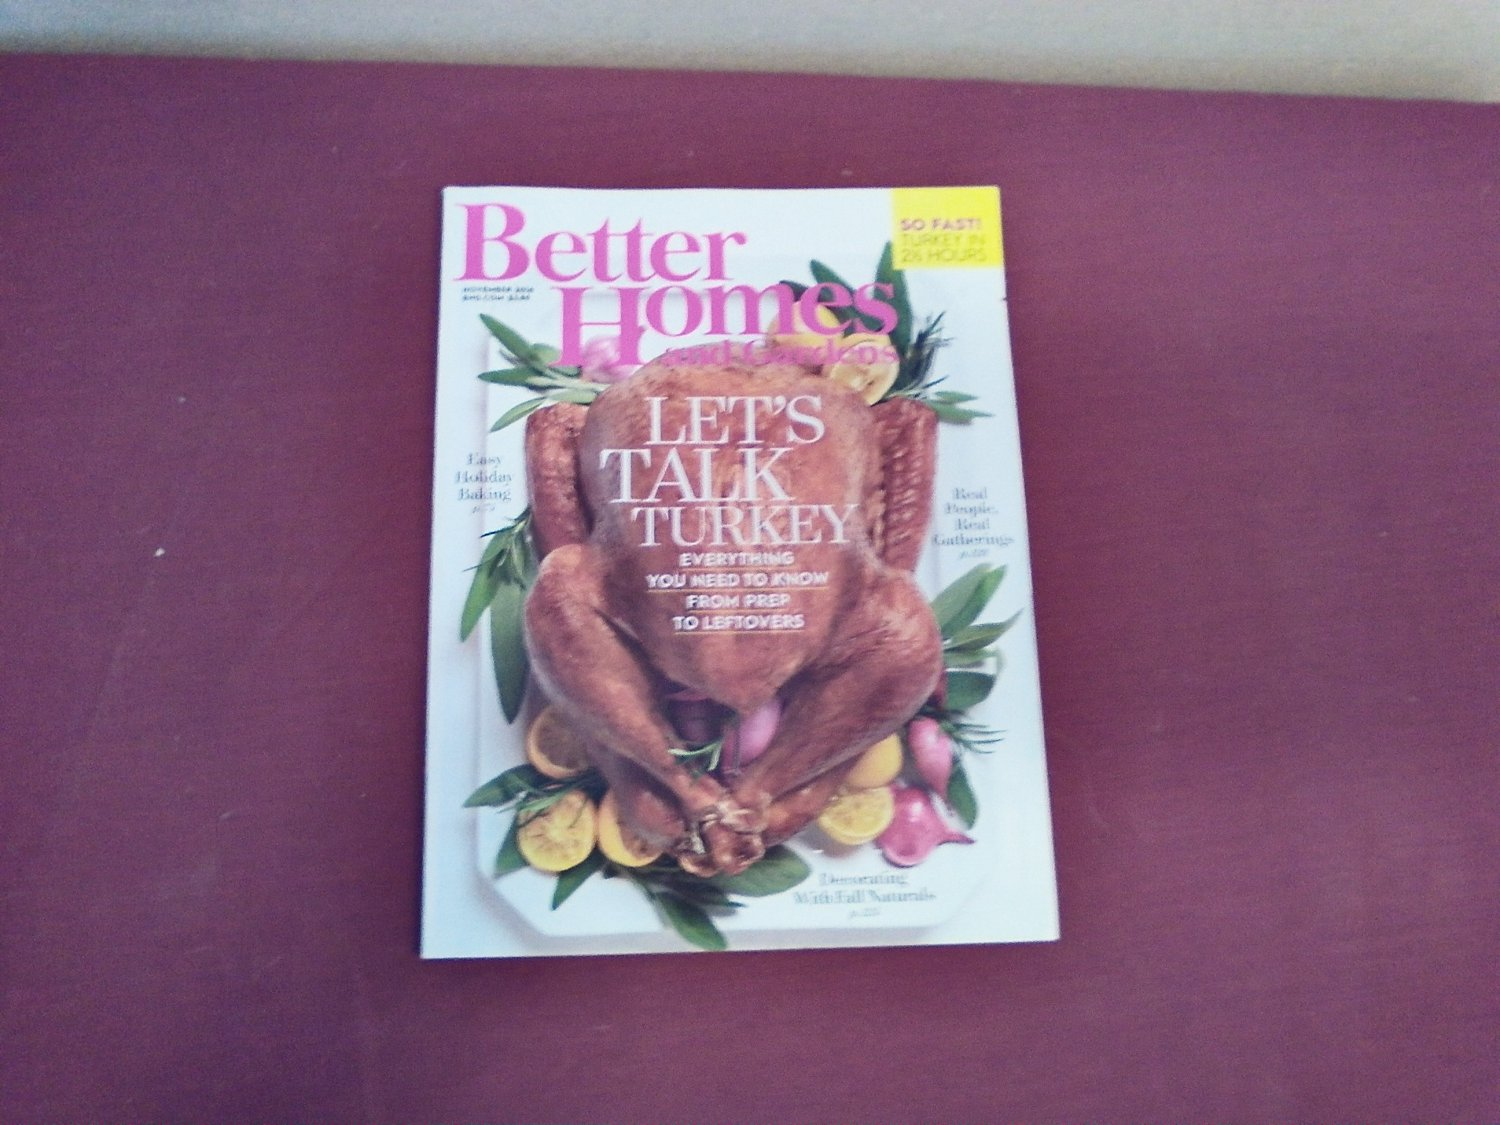 Better Homes and Gardens November 2016 Volume 94 Number 11 Let's Talk Turkey (G1)